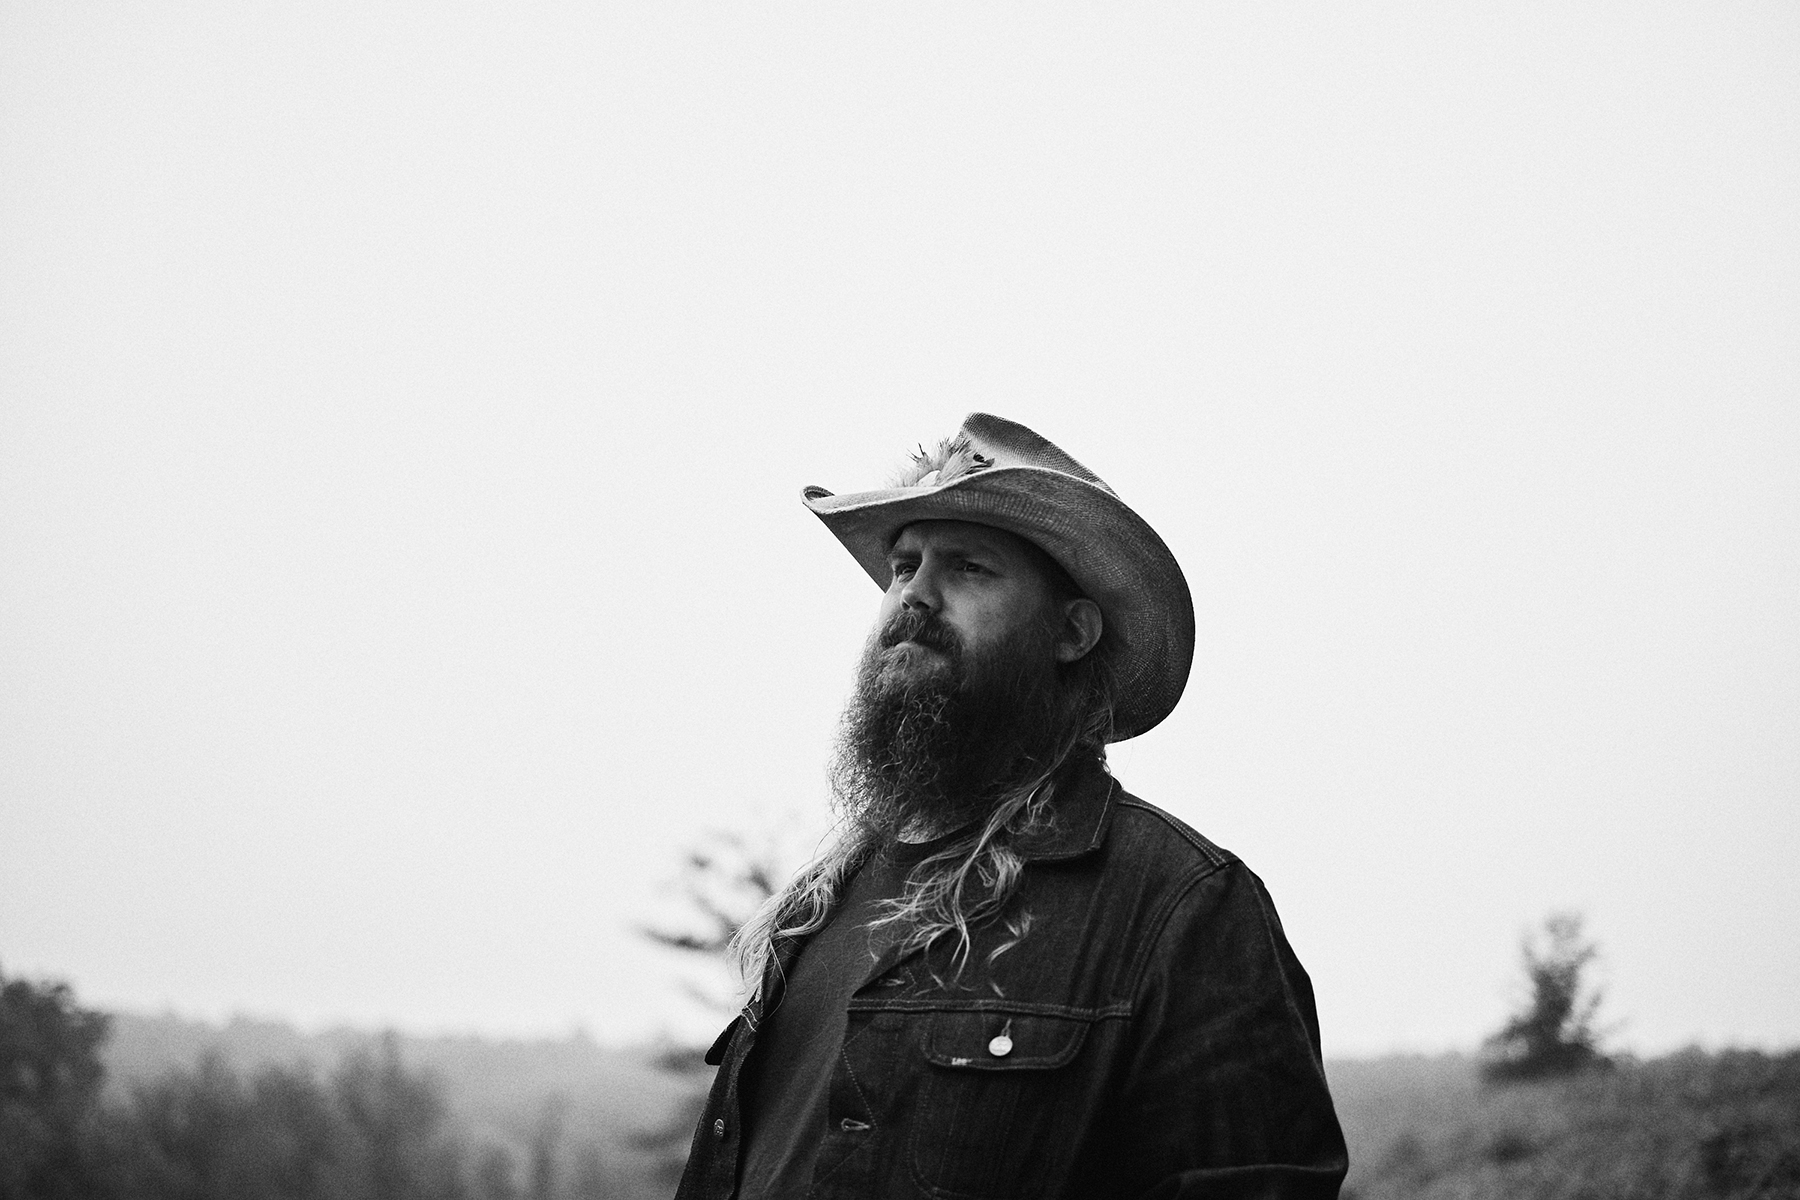 Chris Stapleton Previews New Album 'Starting Over' With Optimistic Title Track - Rolling Stone